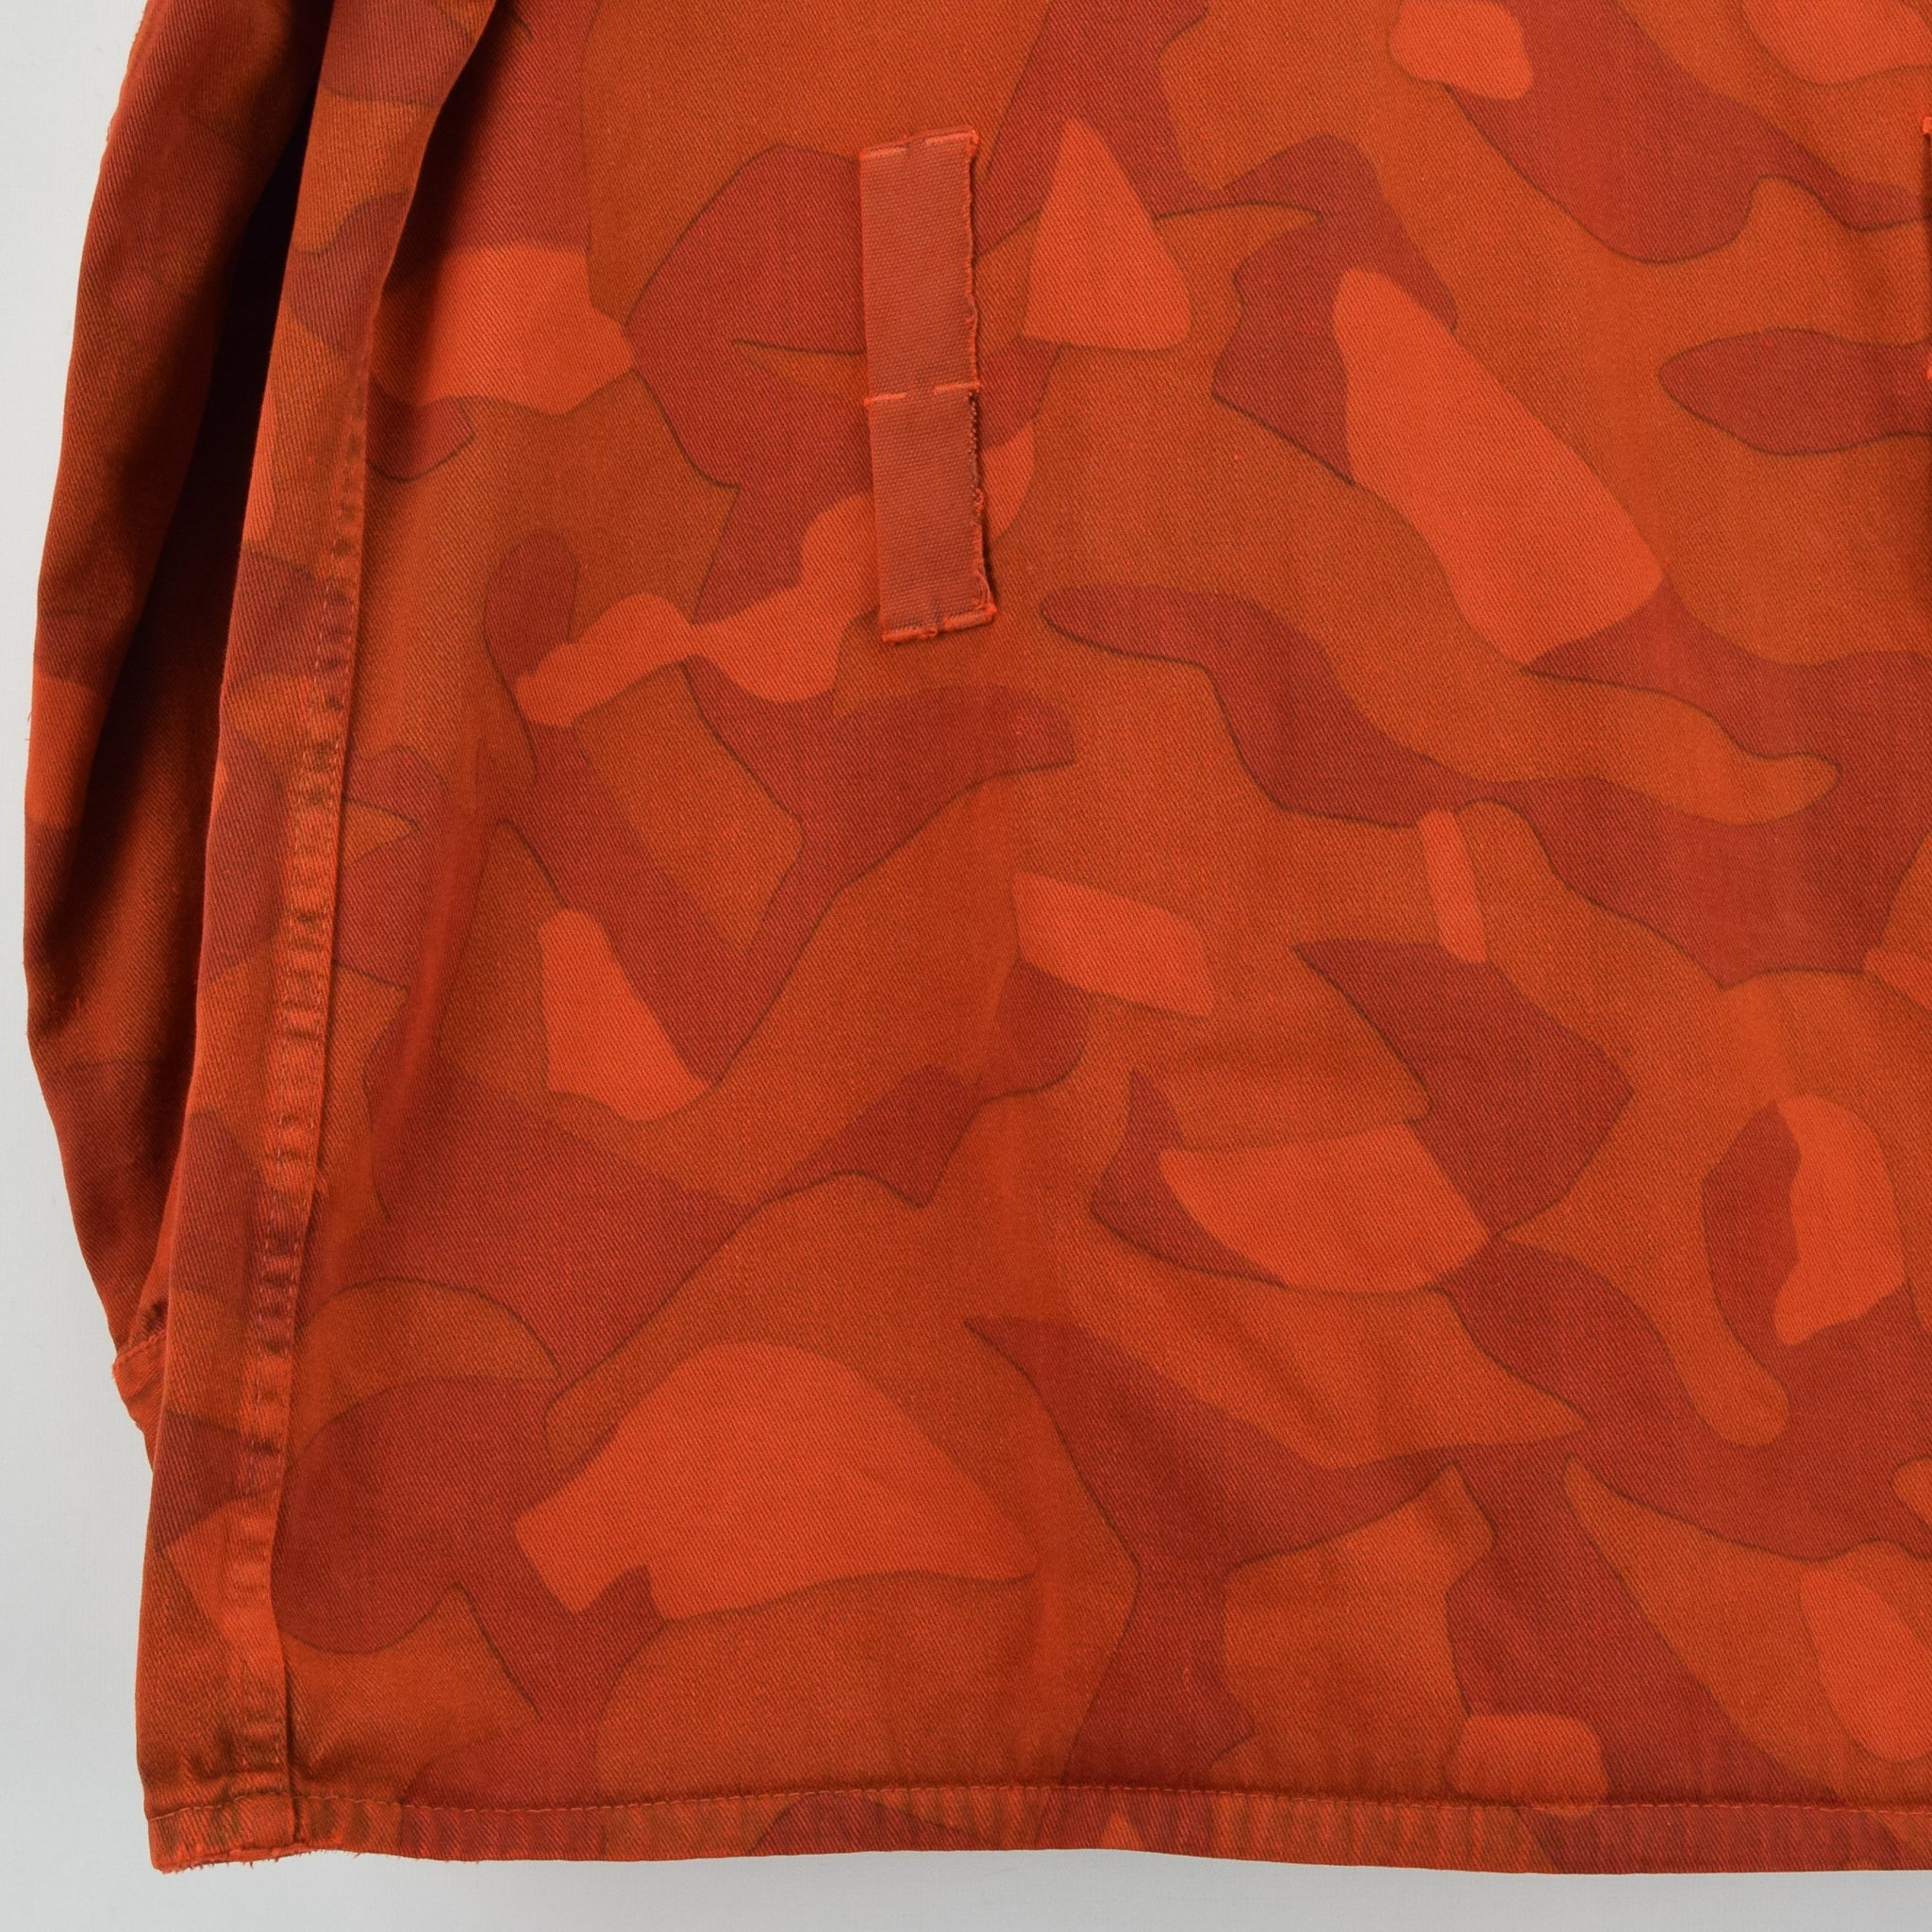 Vintage 70s Military Finnish Army Orange Overdyed Camo Mountain Field Jacket L back hem